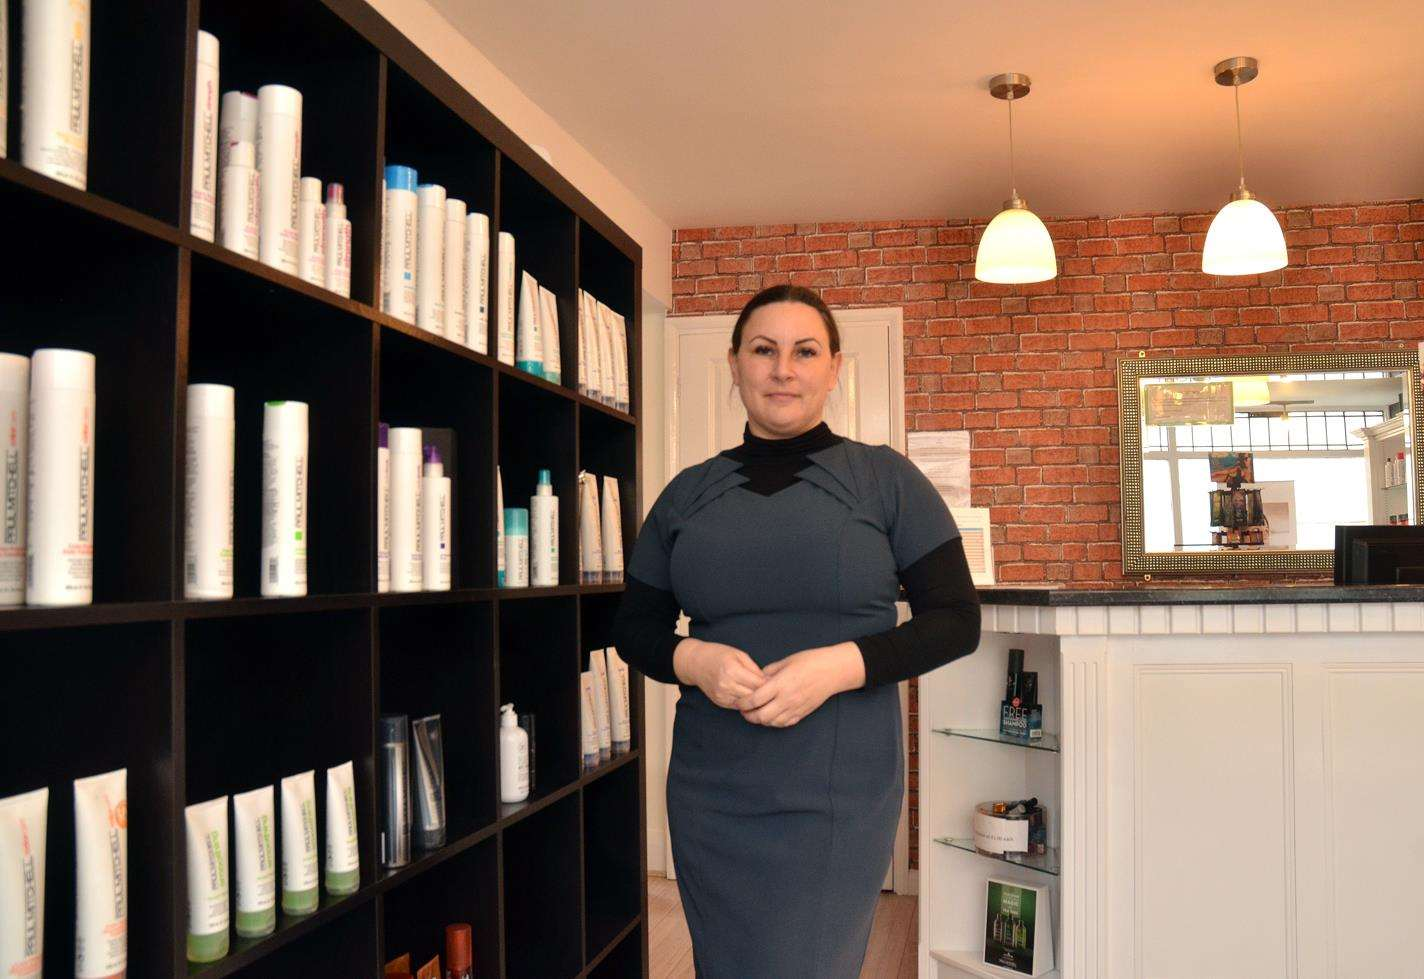 Beauty Salon Owner S Kind Offer To Help Encourage More Women To Go For Their Smear Test